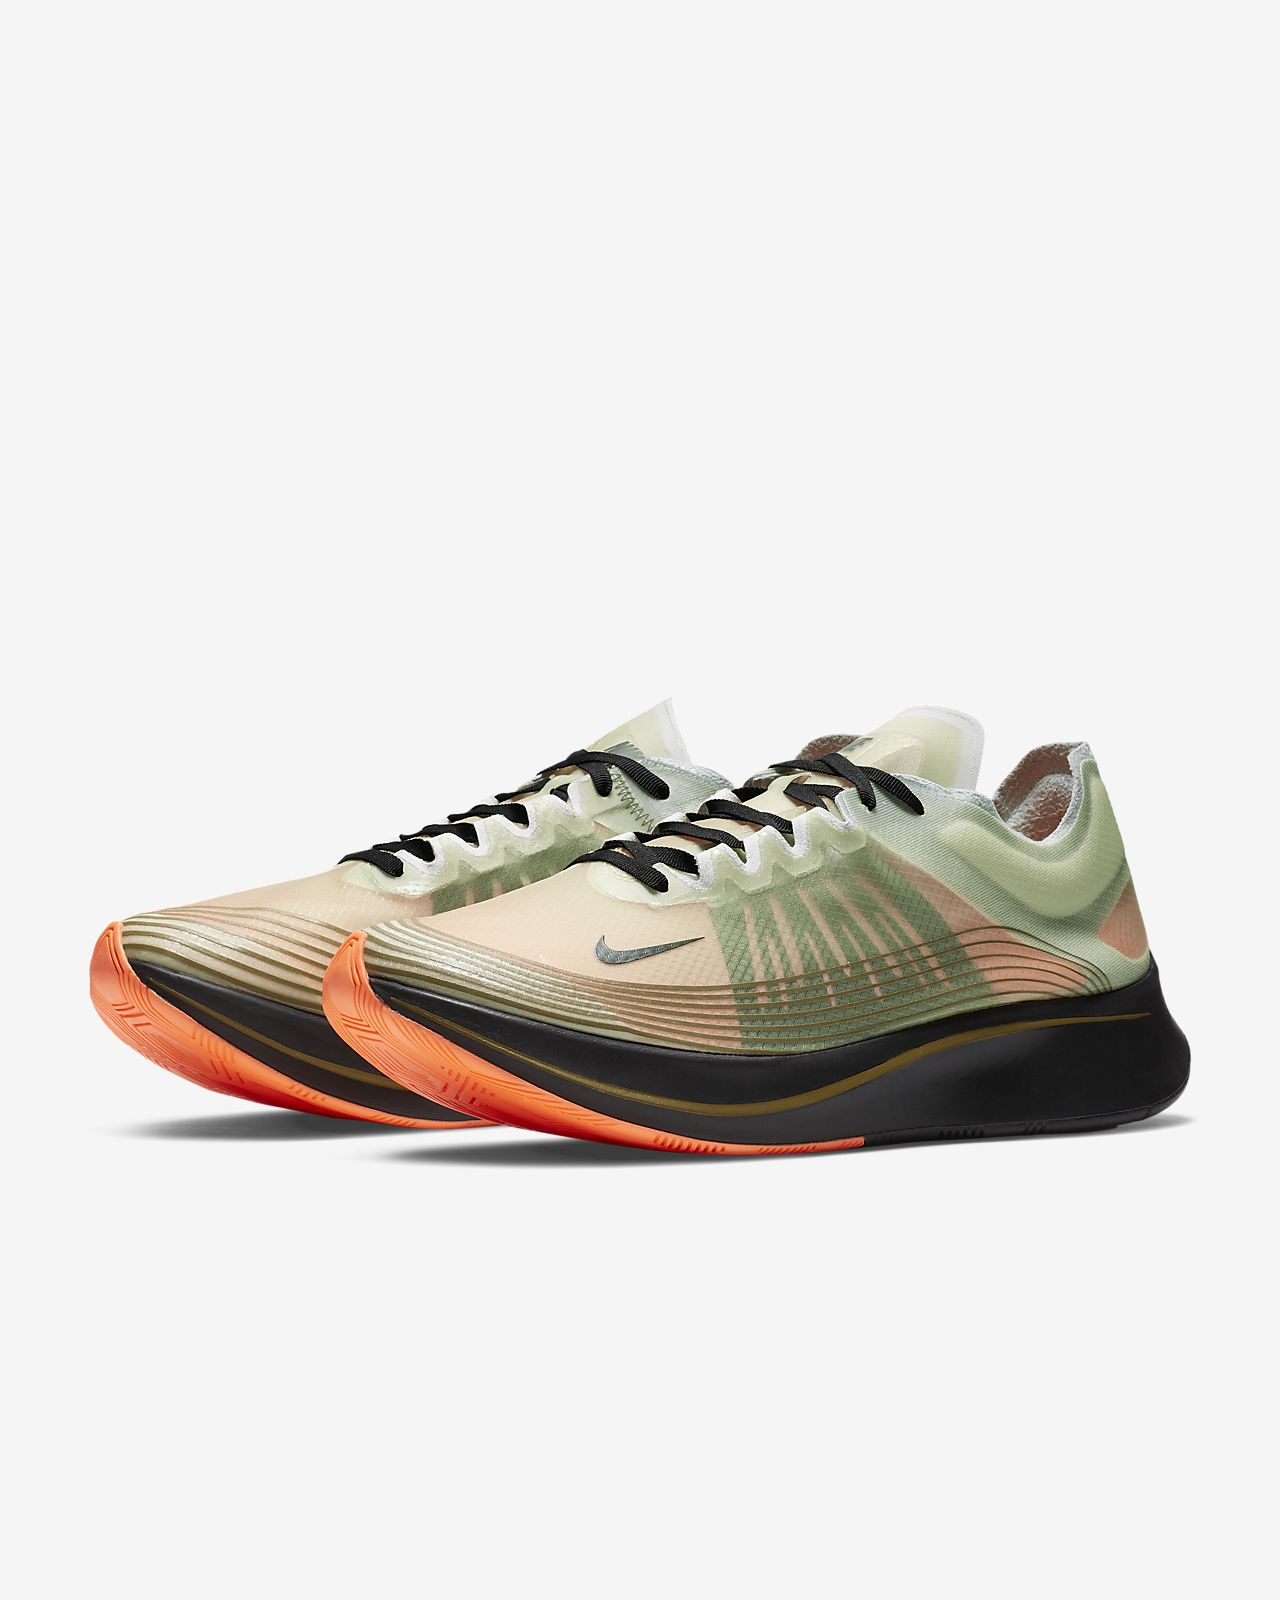 97f78a51426 Nike Zoom Fly SP Running Shoe. Nike.com NZ